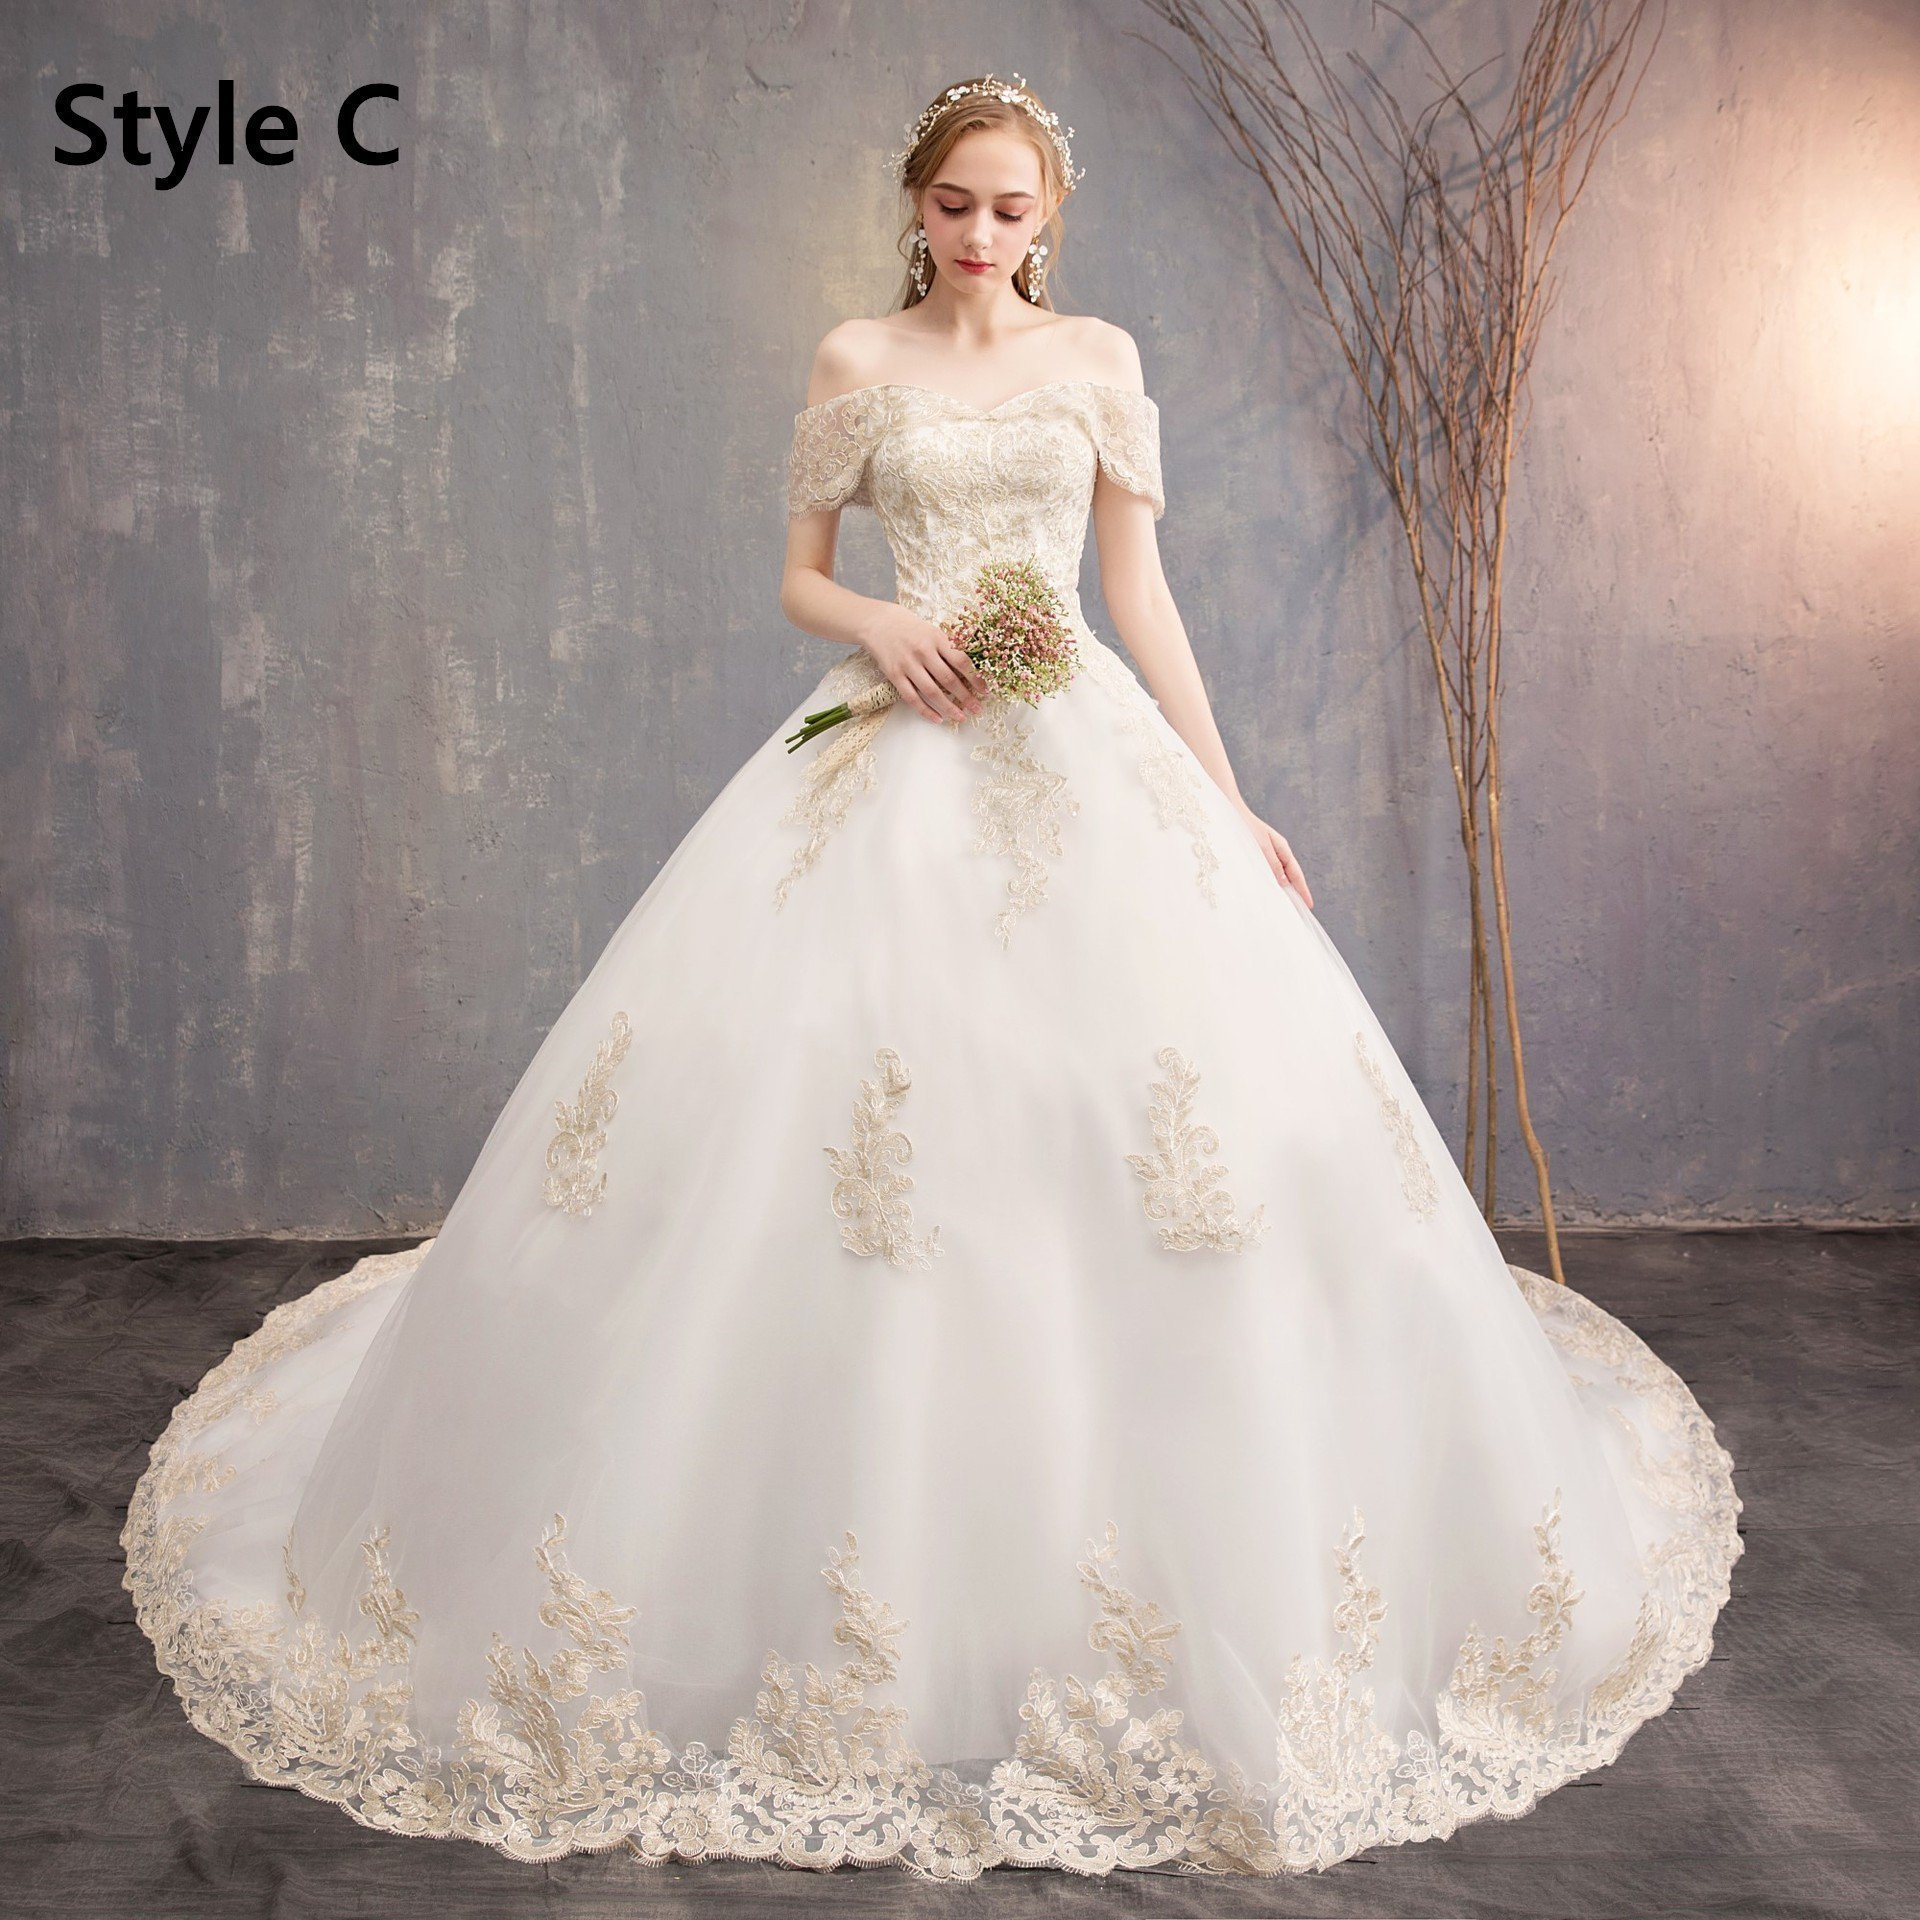 Best Wedding Dresses Lace Dresses African Lace Styles 2018 Dress Shops Near Me Lace And Chiffon Wedding Dress Wedding Color Schemes Something Borrowed Something New Cheap Lace Wedding Dresses